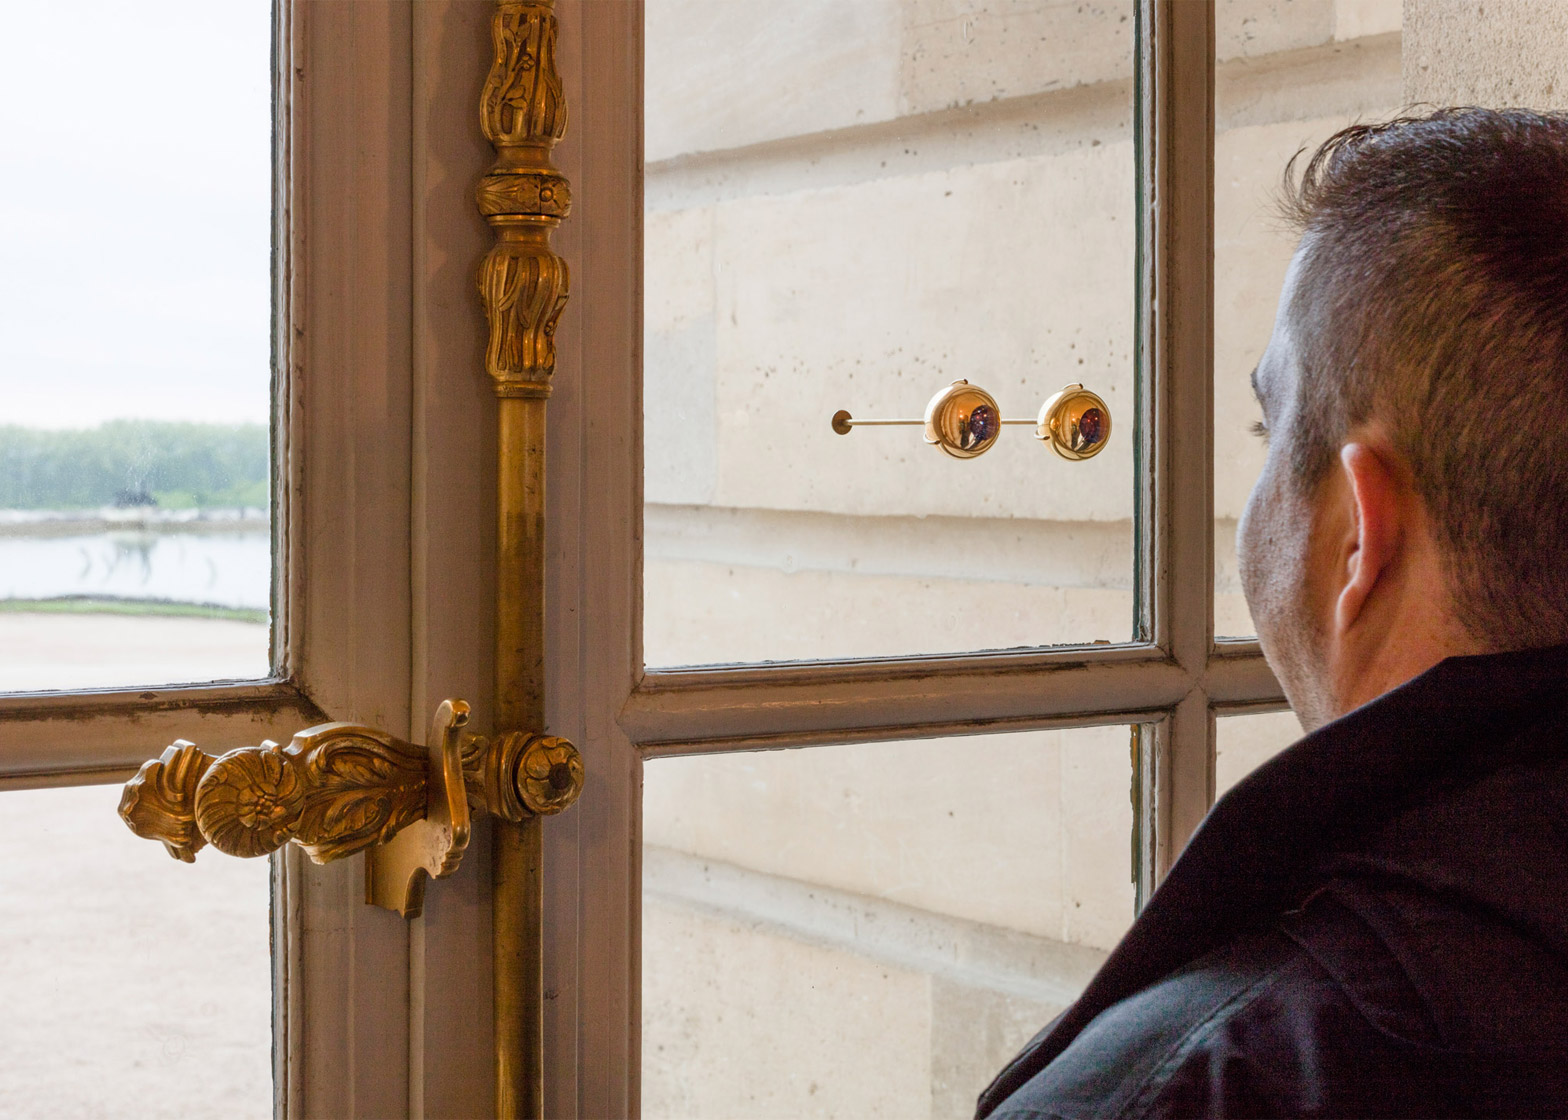 The Gaze of Versailles by Olafur Eliasson at the Palace of Versailles, France